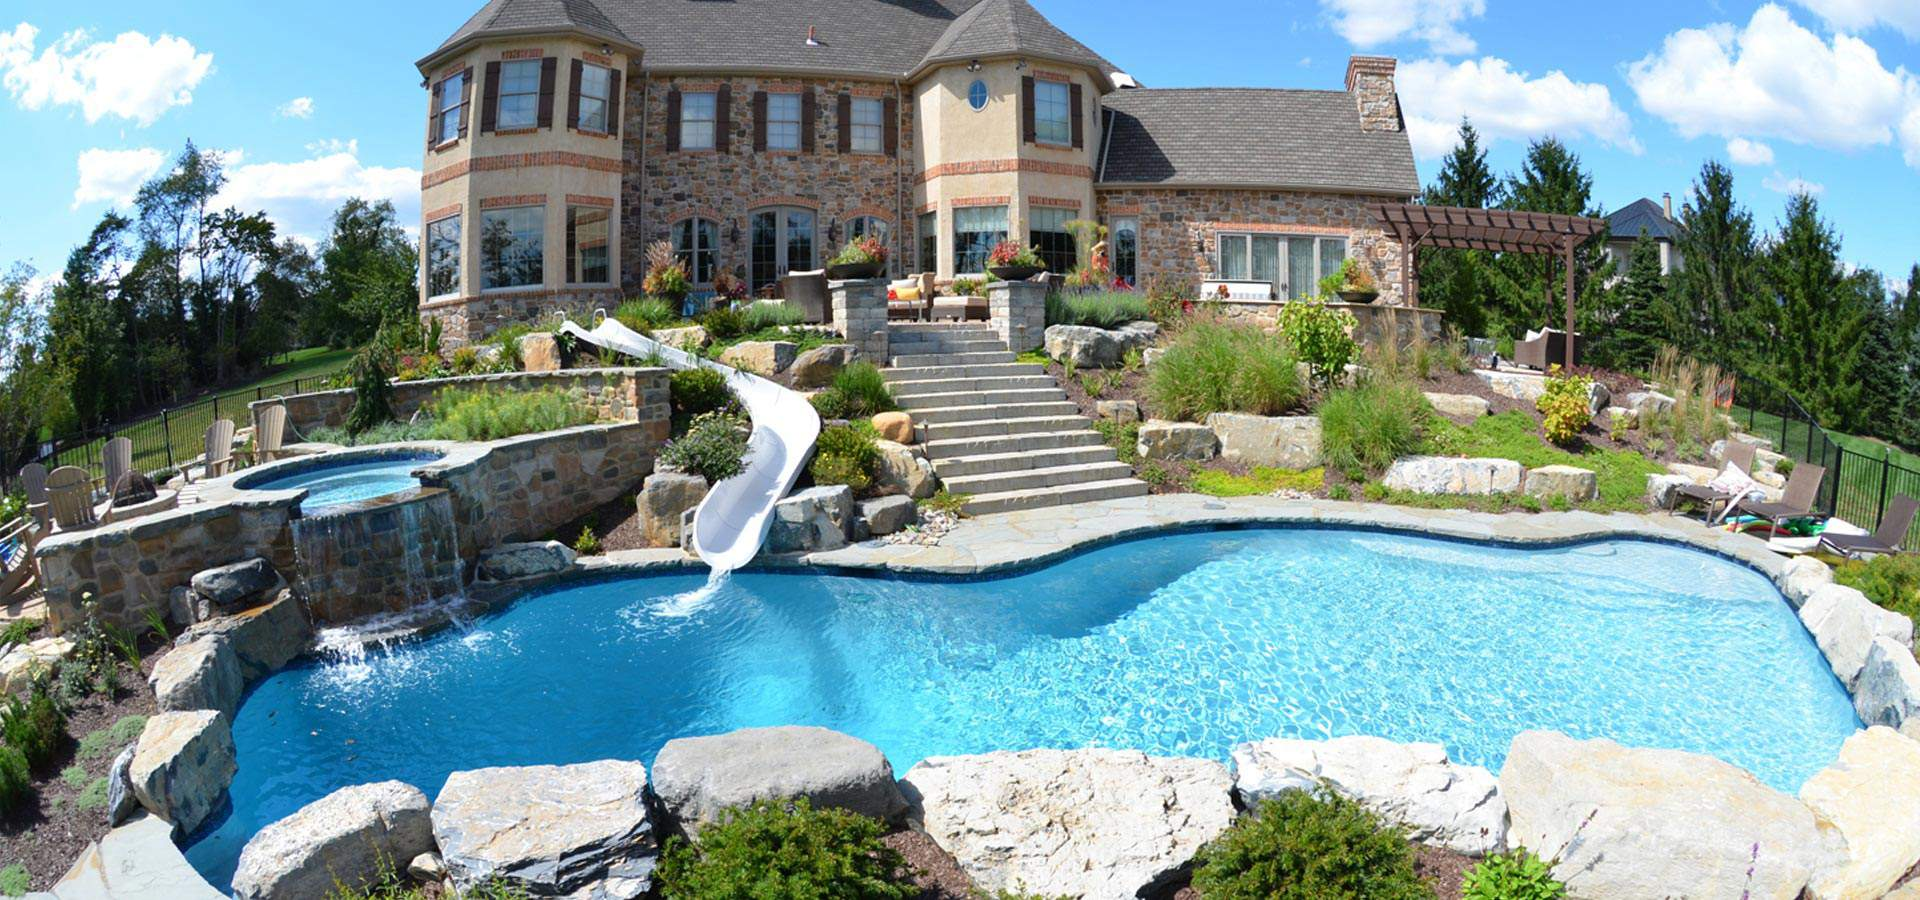 1 pool builder in lehigh valley pa best inground pools for Custom inground swimming pools